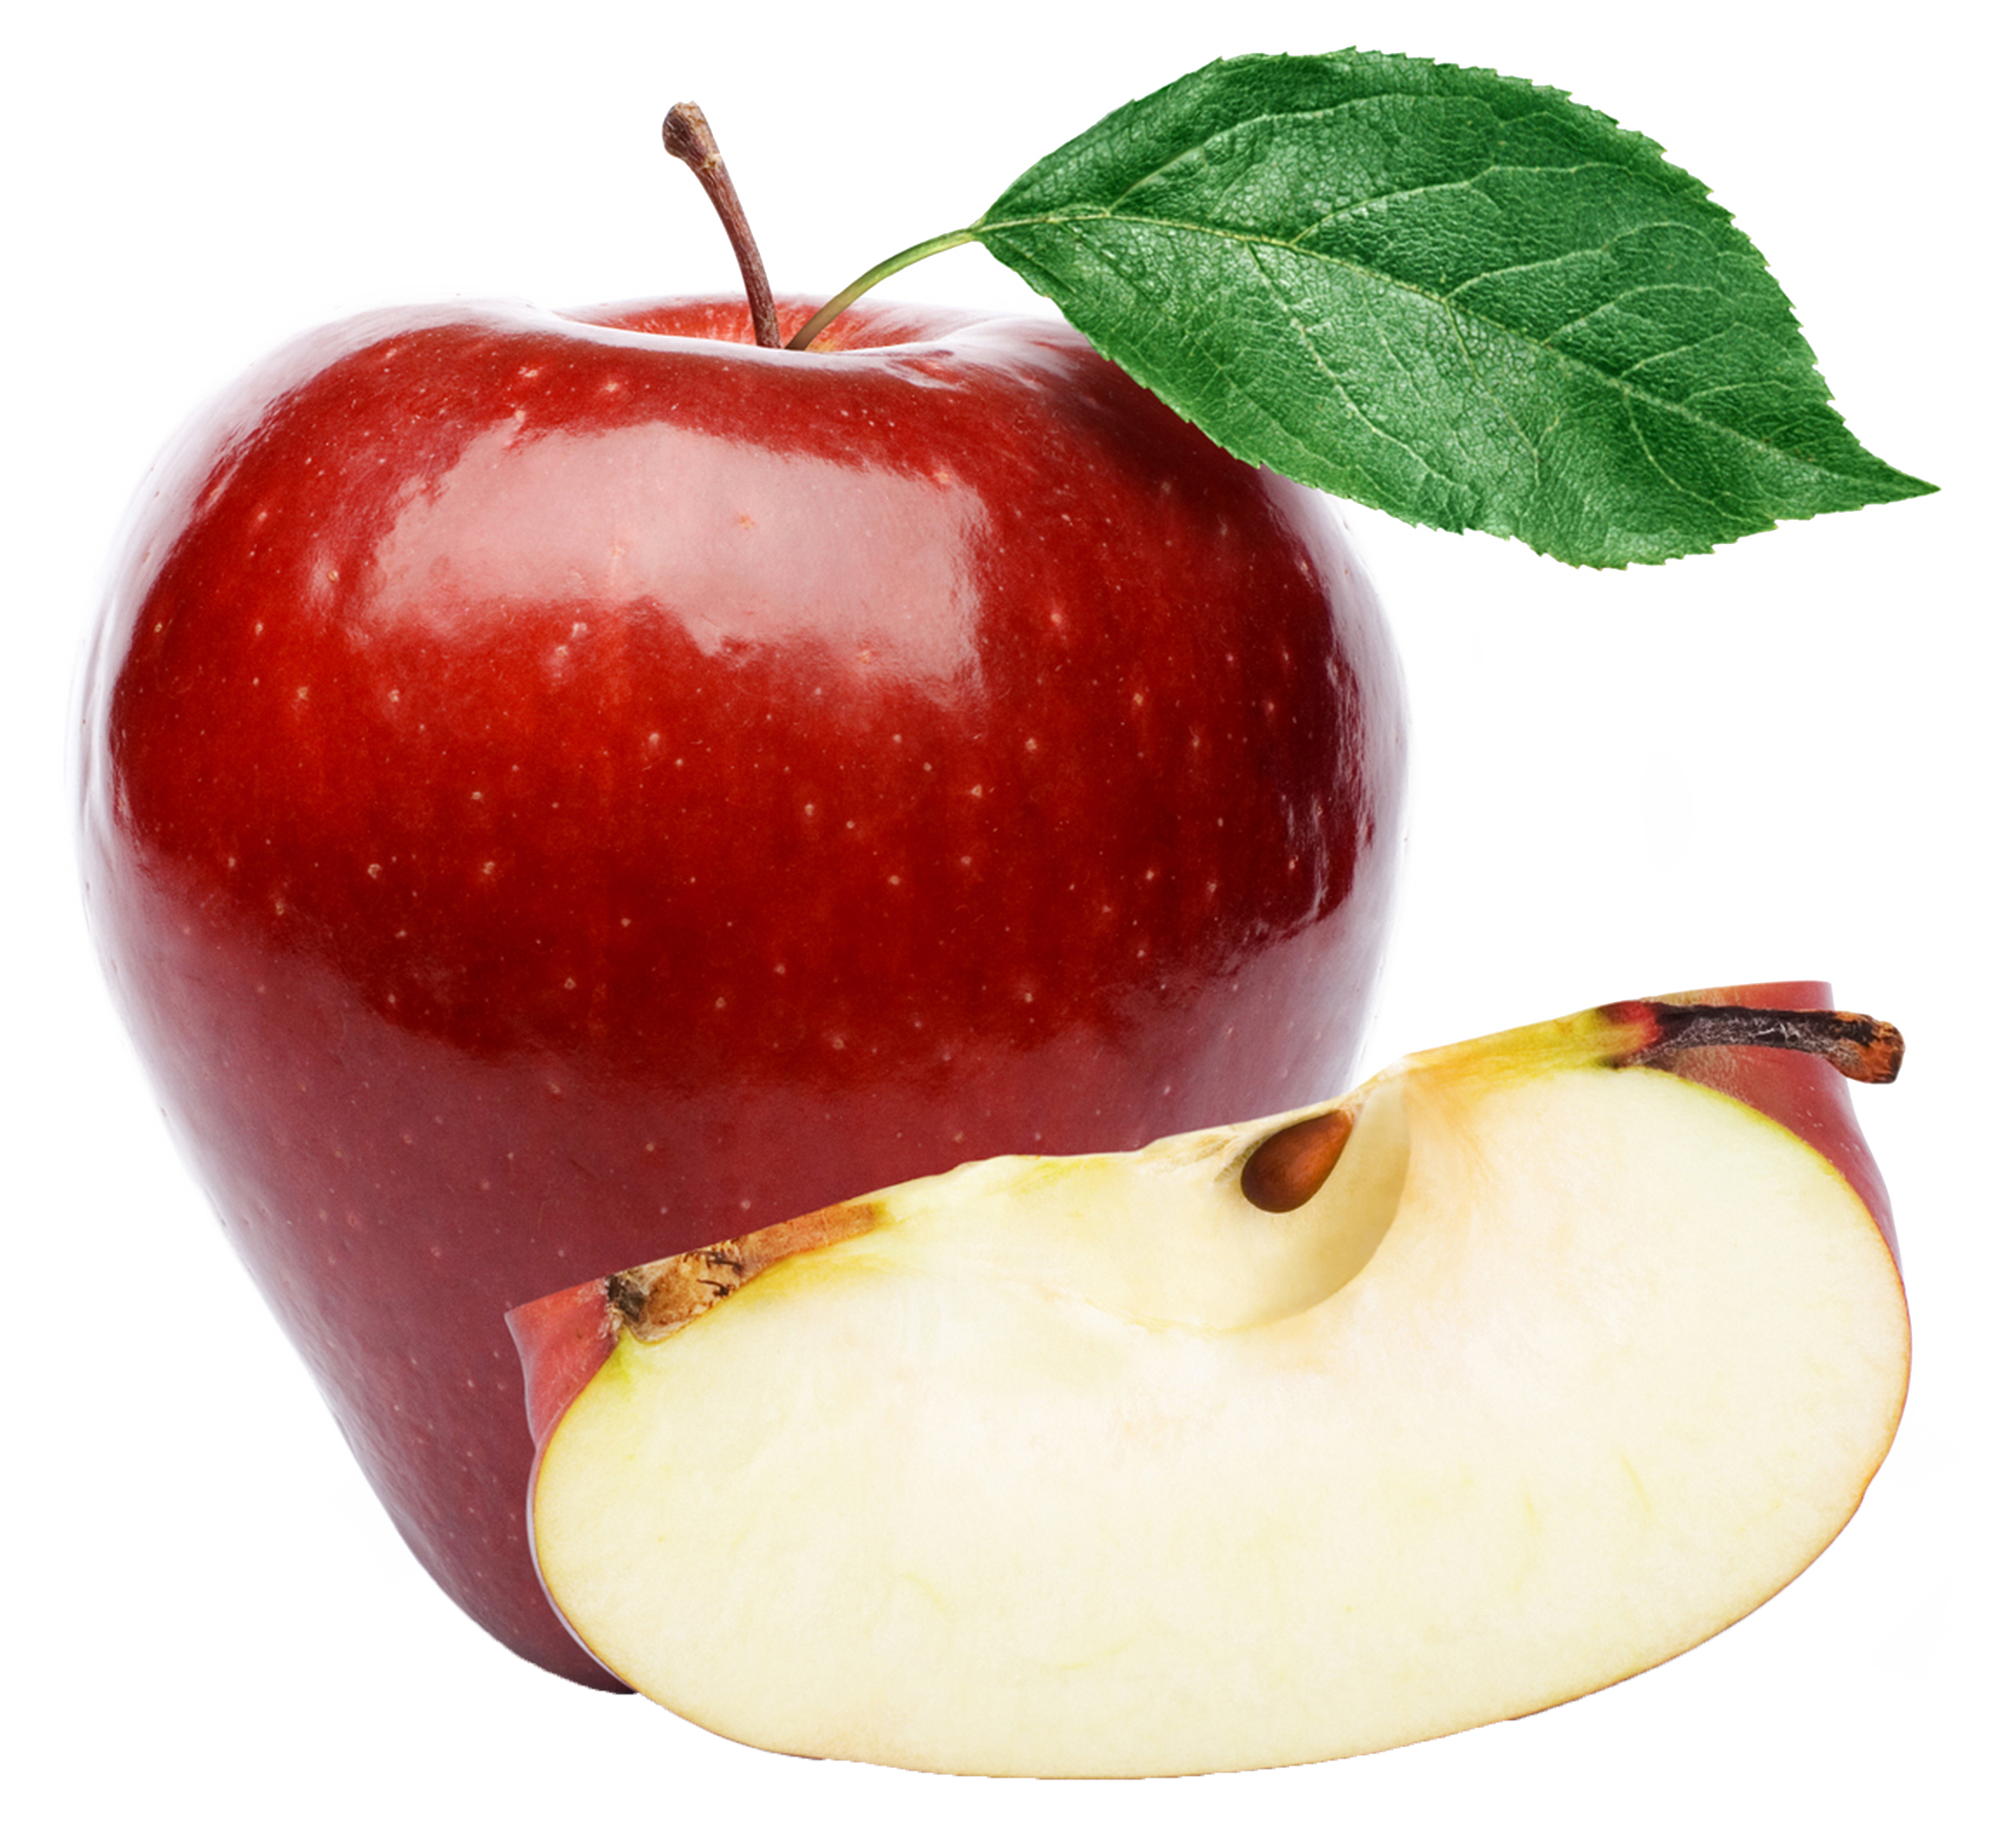 Large Red Apple Png Clipart Red Apple Fruit Apples Photography